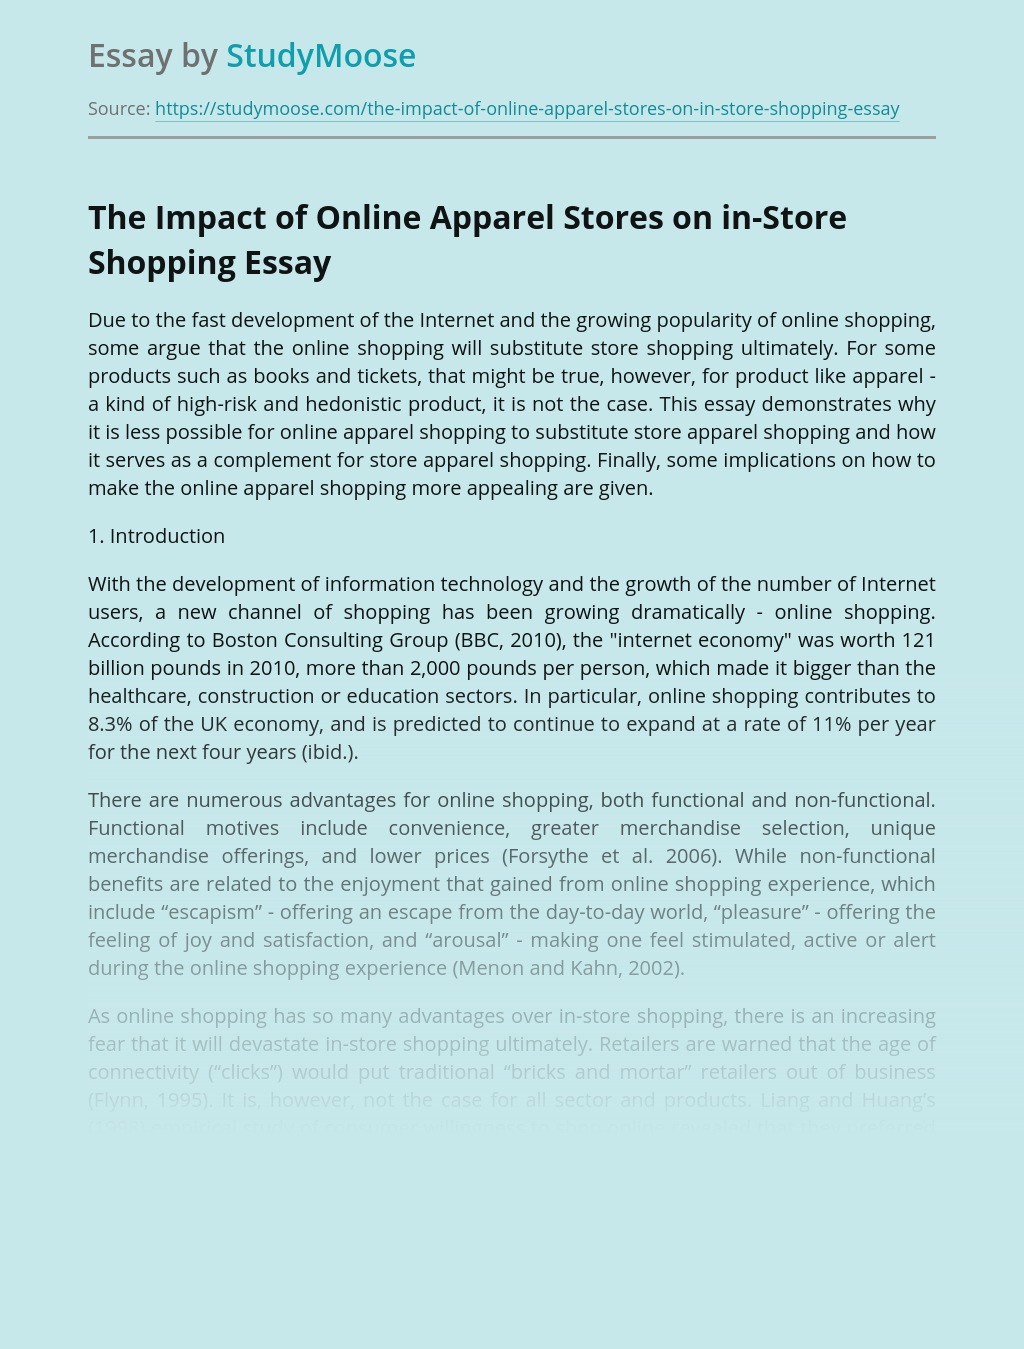 The Impact of Online Apparel Stores on in-Store Shopping